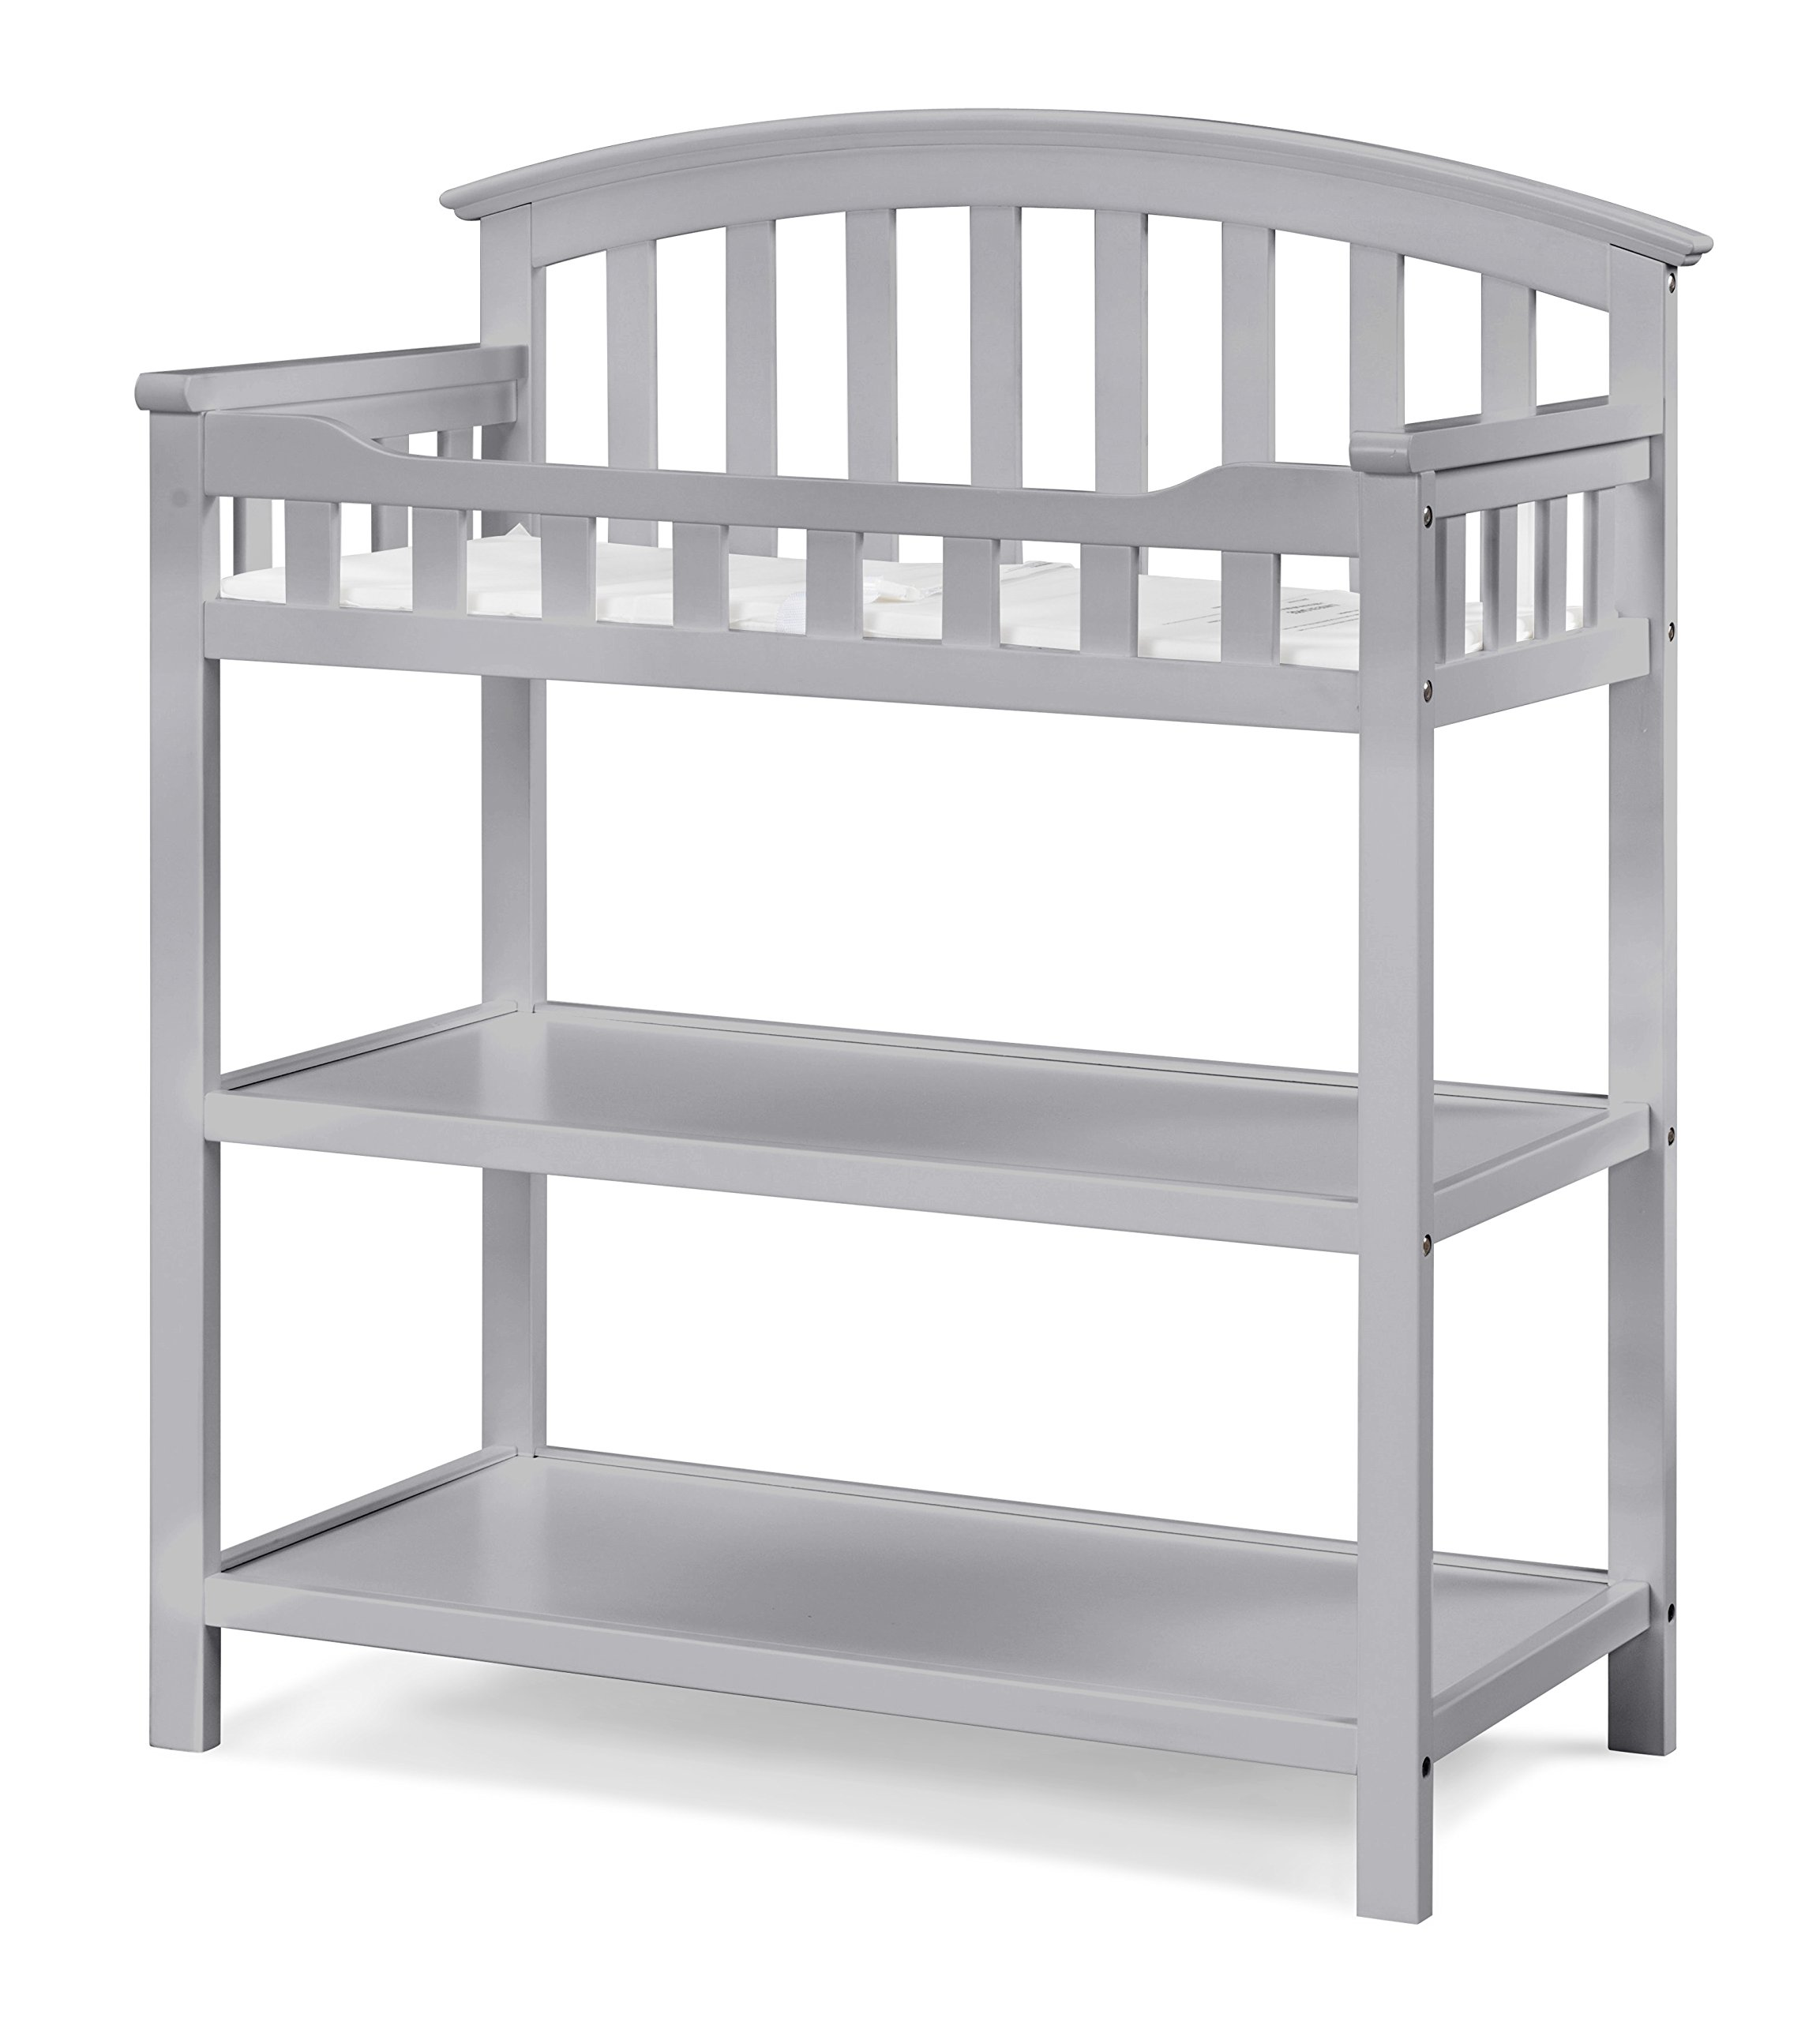 Graco Changing Table, Pebble Gray, Nursery Changing Table for Infants or Babies, Includes Water-Resistant Changing Pad and Safety Strap, Non-Toxic Finish